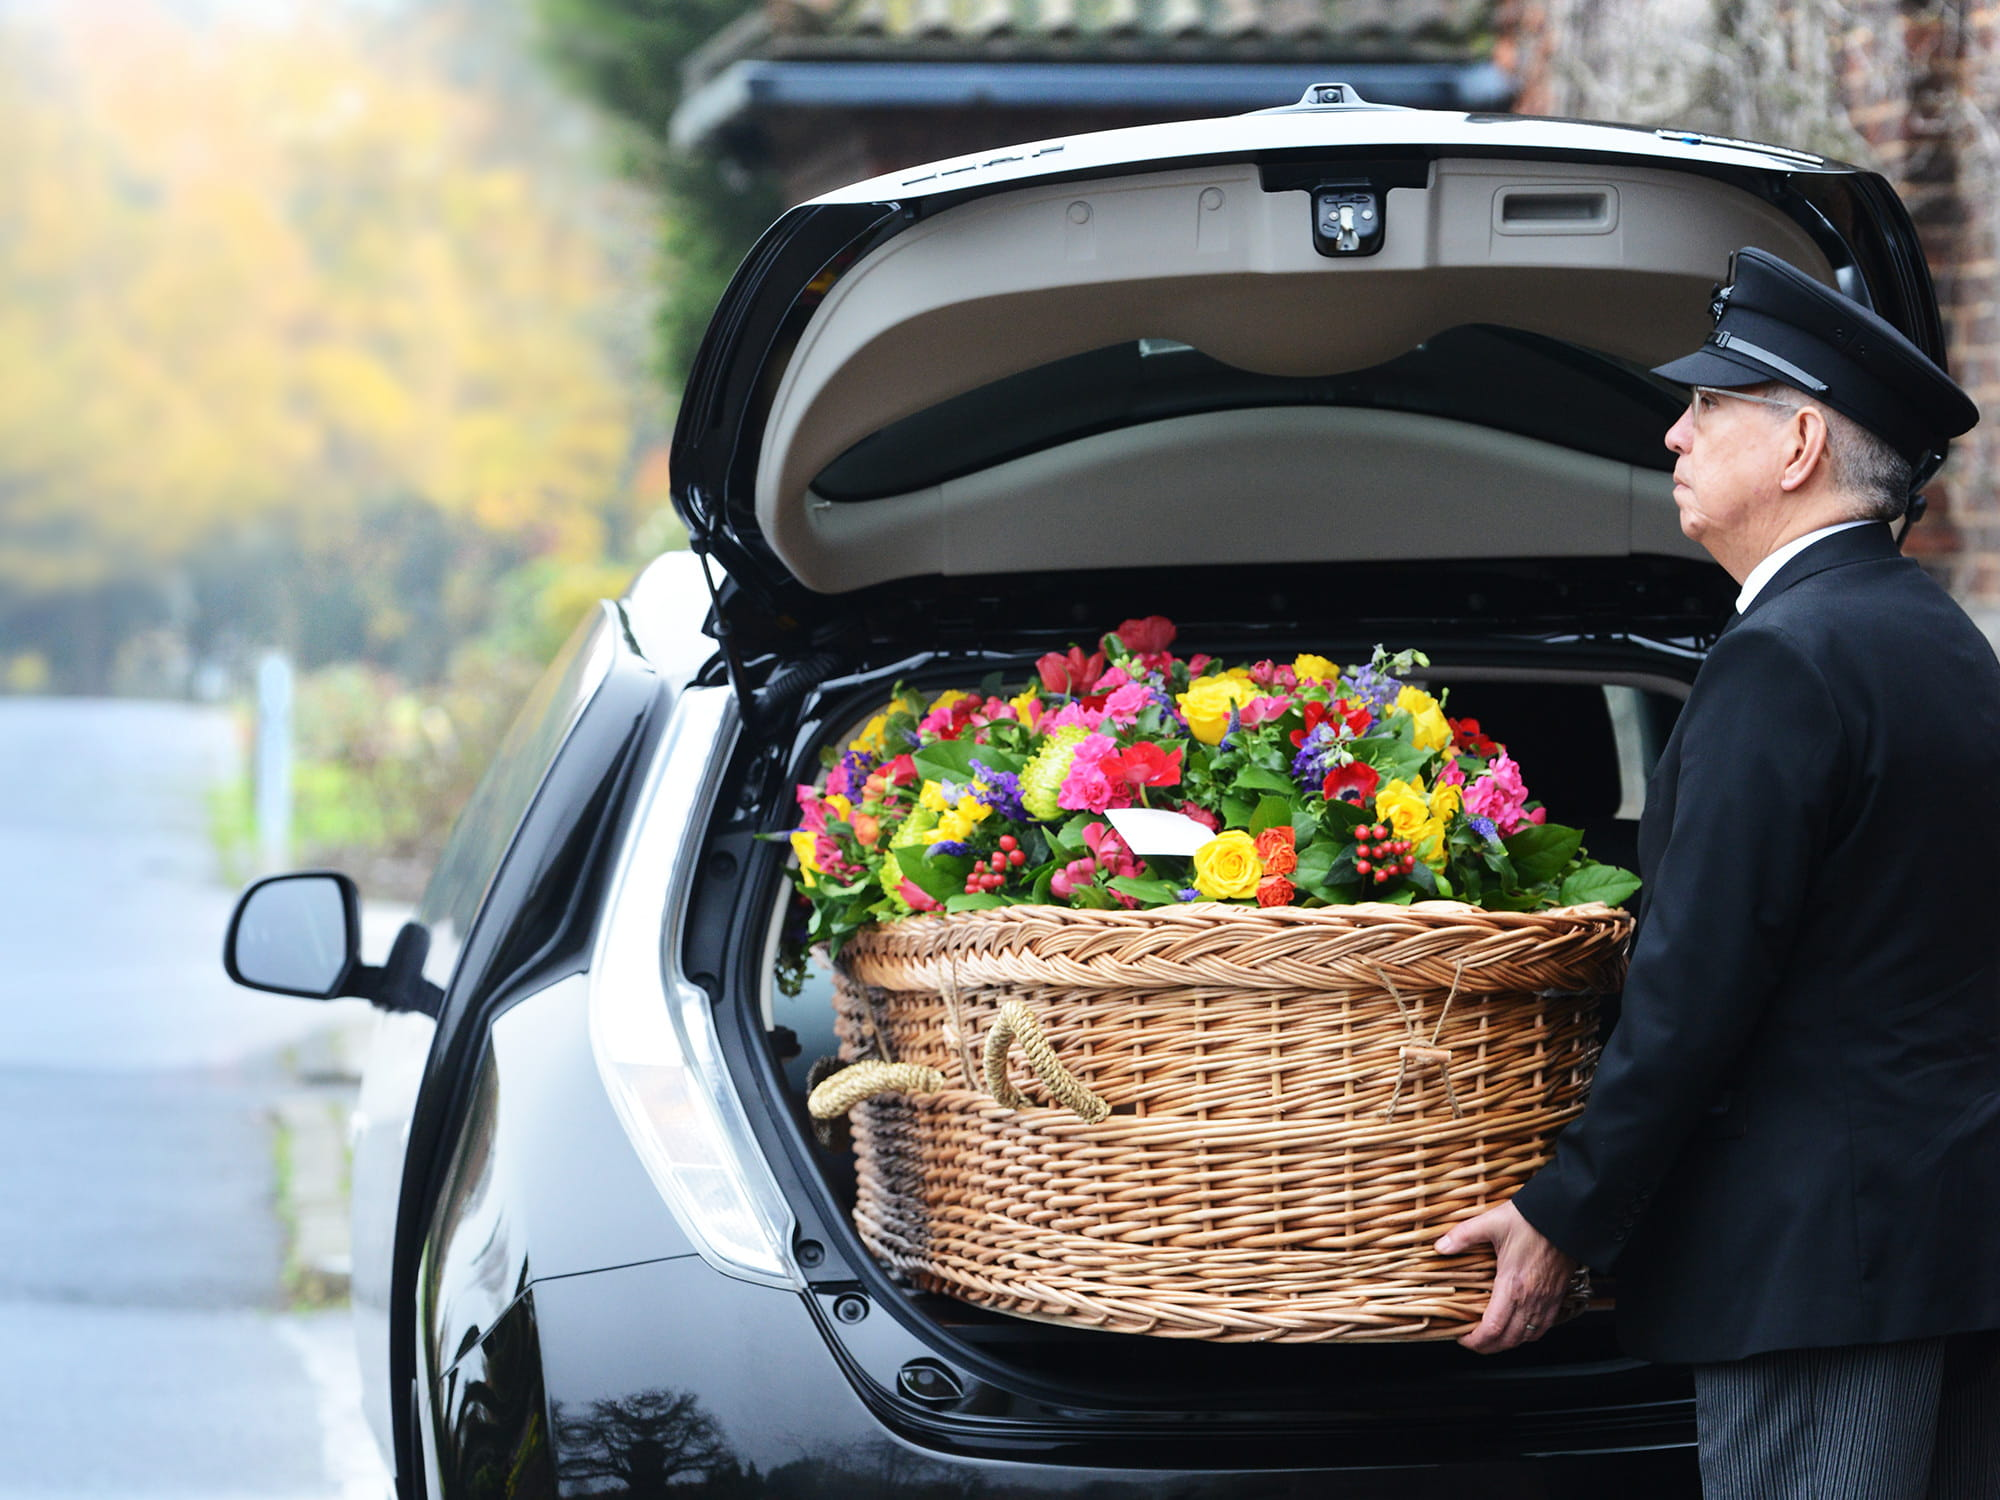 Electric Hearse at a service with casket being loaded